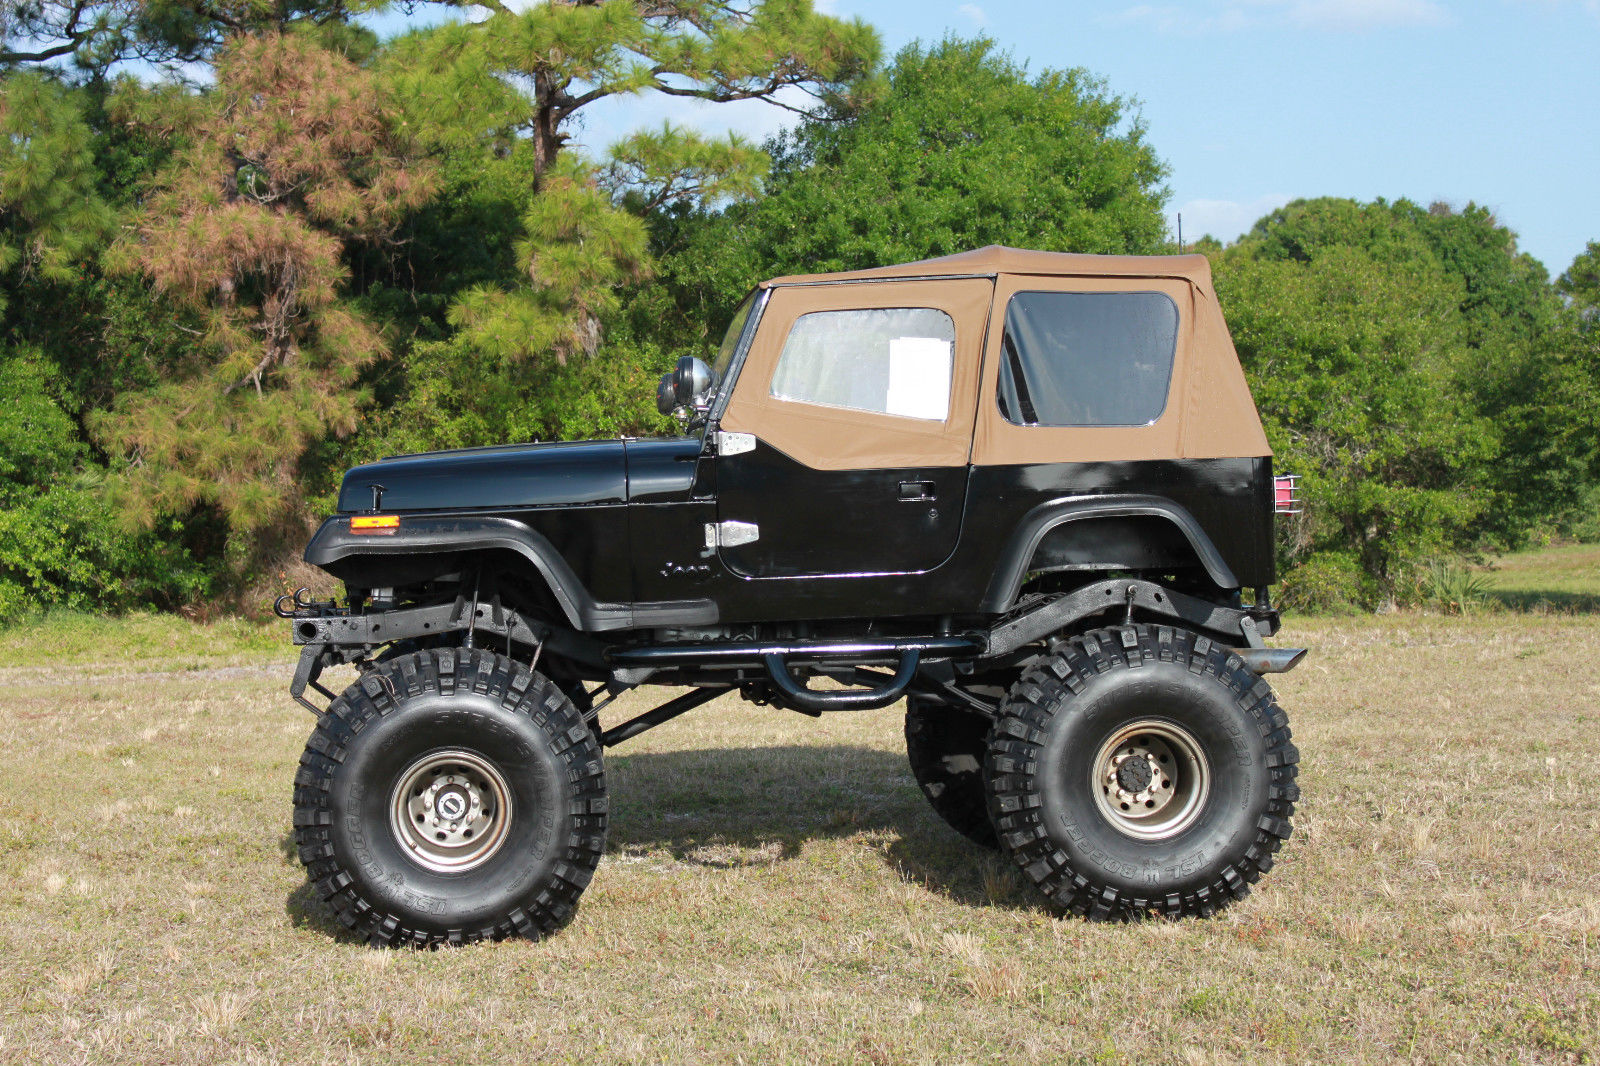 1993 lifted jeep wrangler 383 stroker monster 44 boggers free 2000 Jeep Wrangler Lifted 1993 lifted jeep wrangler 383 stroker monster 44 boggers free delivery